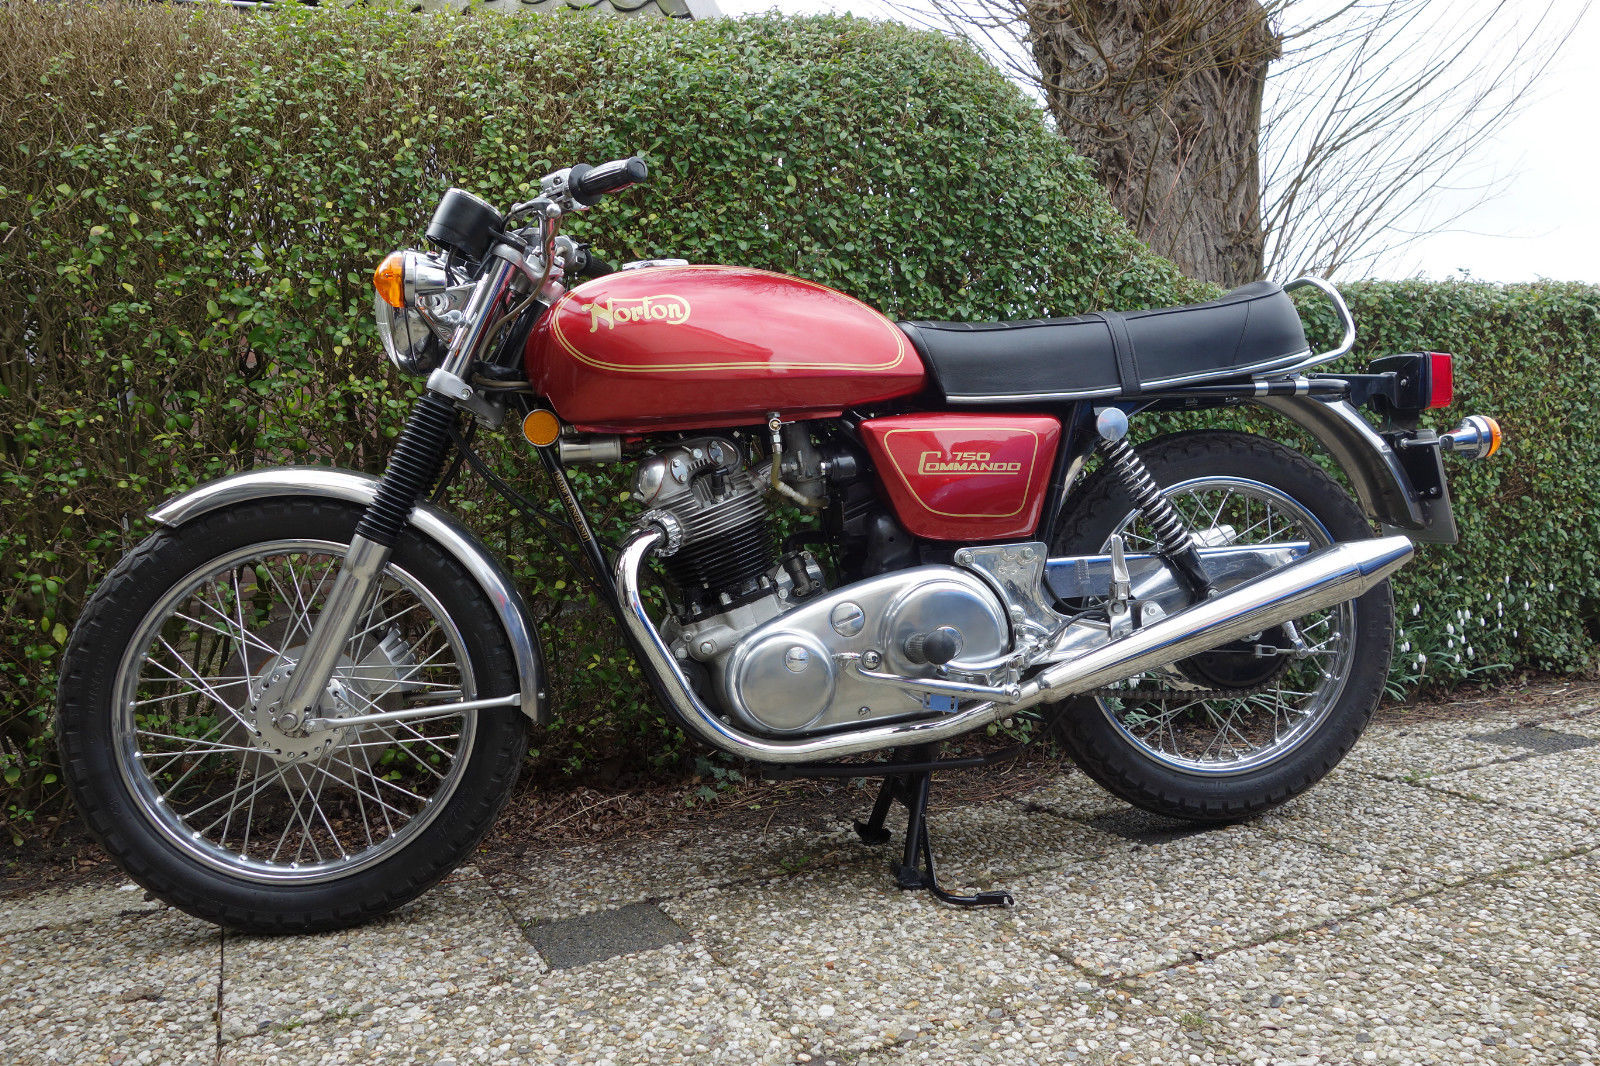 Norton Commando 750 - 1971 - Left Side View, Motor and Transmission, Fuel Tank, Side Panel, Frame and Forks.